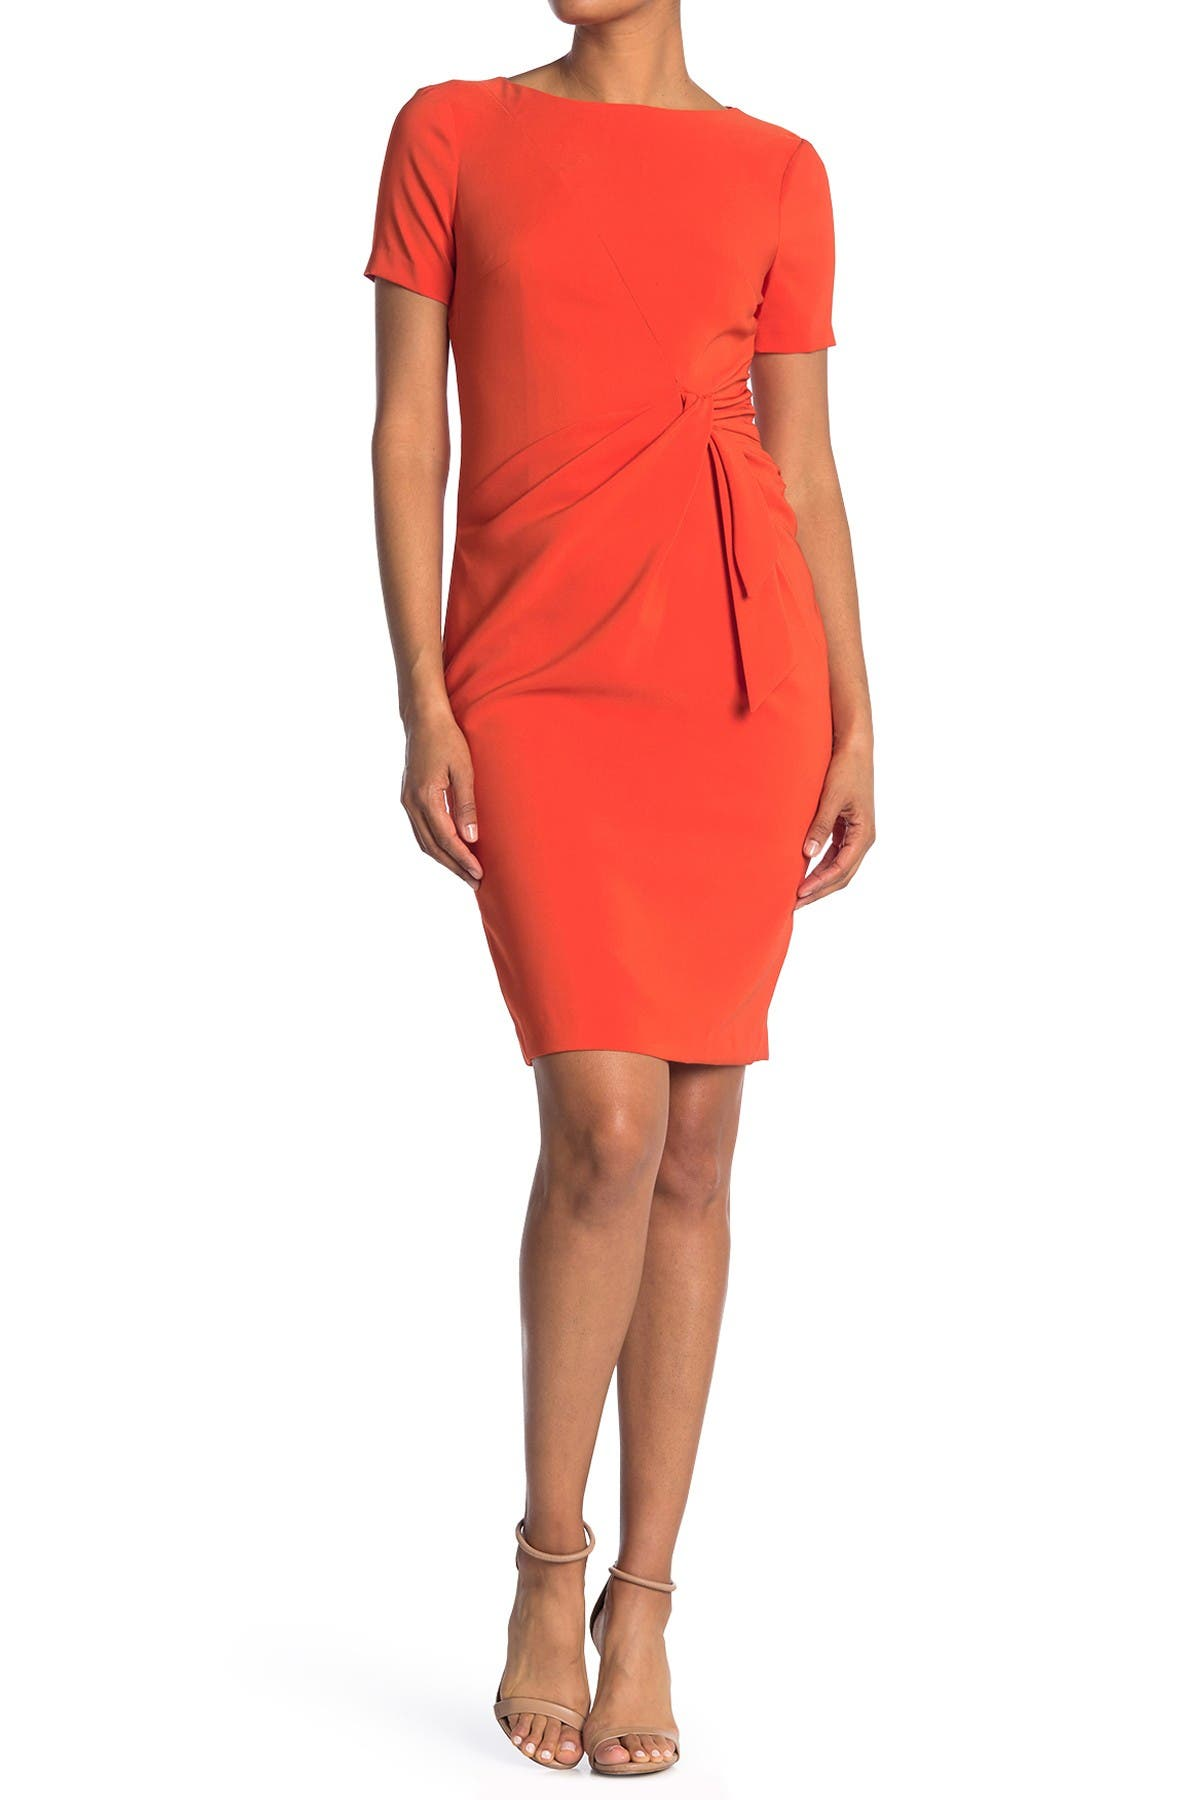 Image of Maggy London Draped Faux Tie Dress